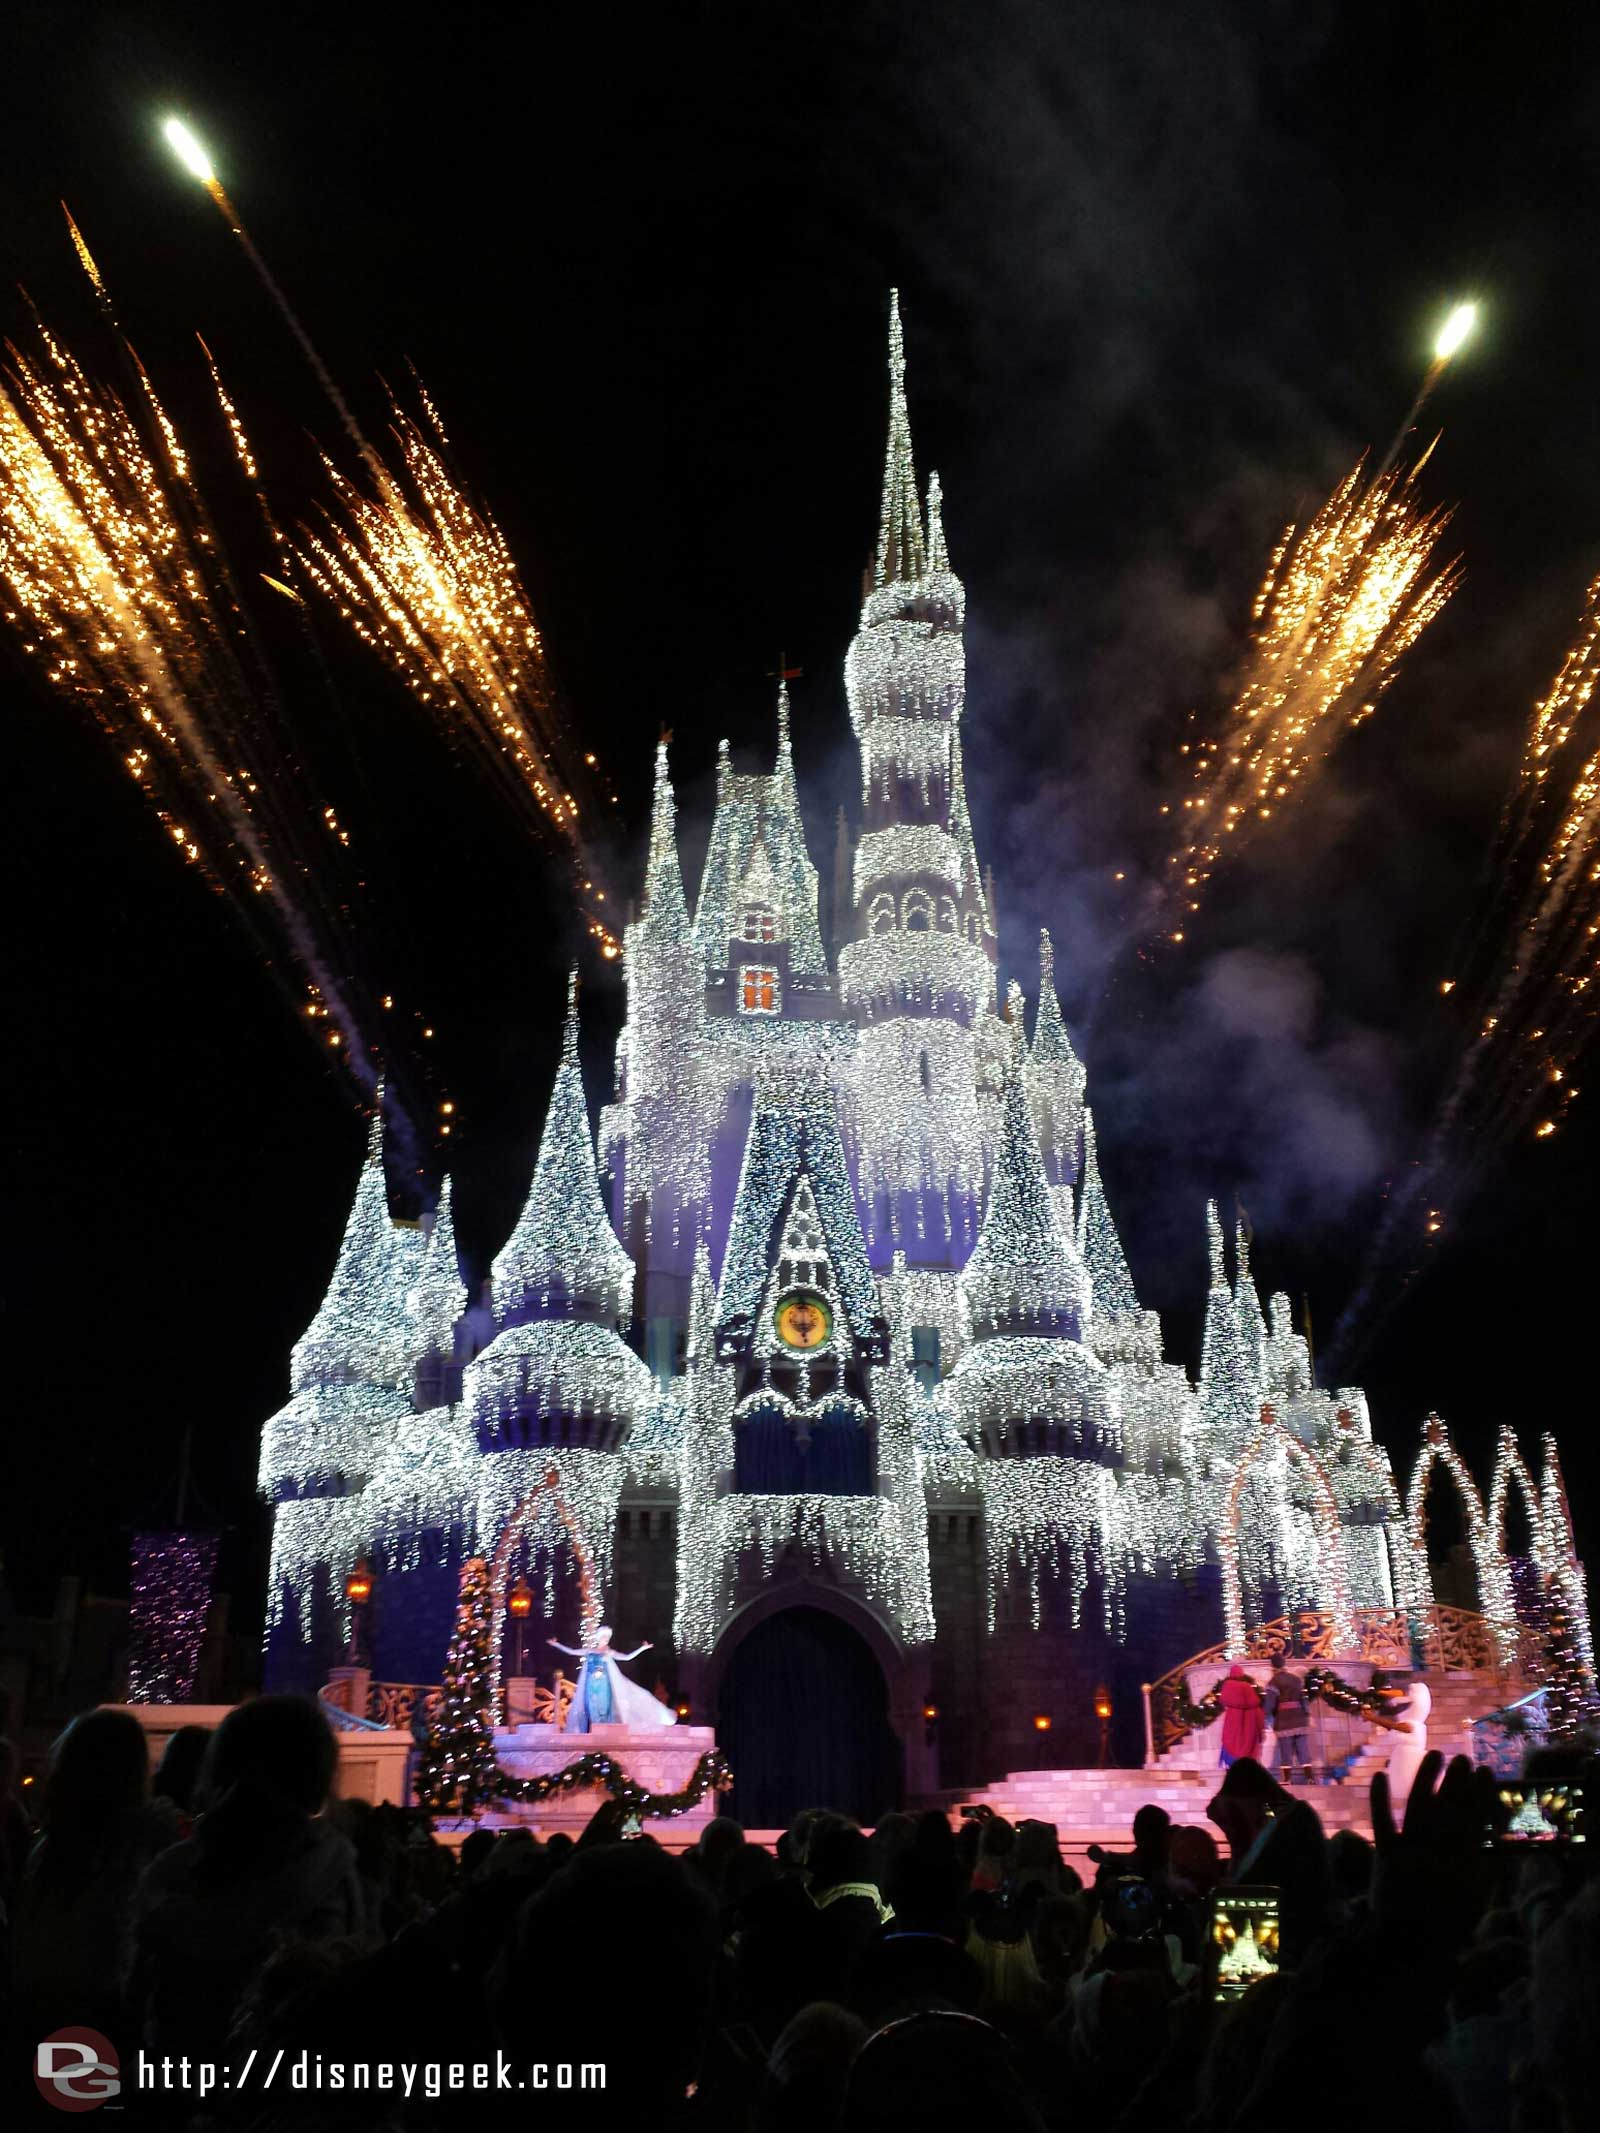 Cinderella Castle right after the lights were turned on this evening.